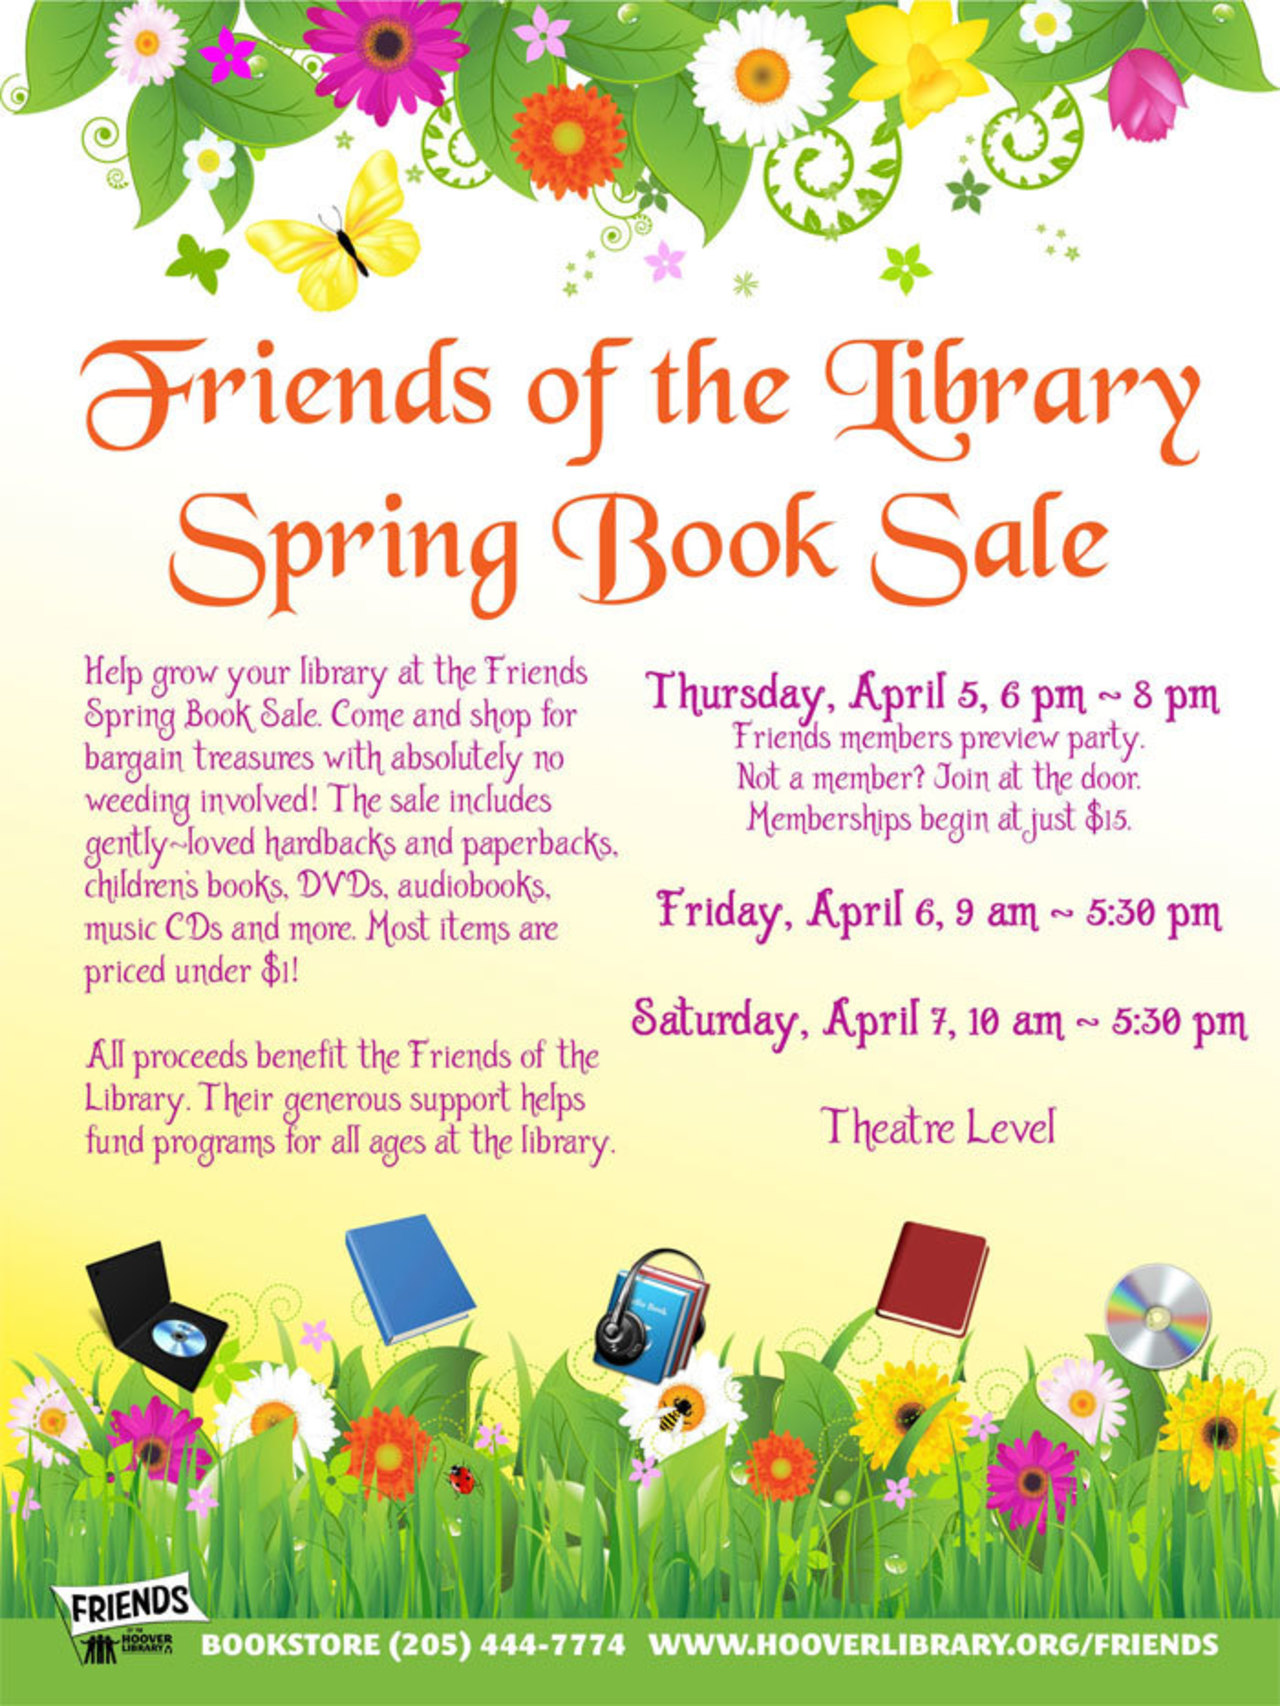 Friends of the Library Spring Book Sale  Thursday, April 5, 6 pm - 8 pm (Friends members preview party.);  Friday, April 6, 9 am - 5:30 pm; Saturday, April 7, 10 am - 5:30 pm